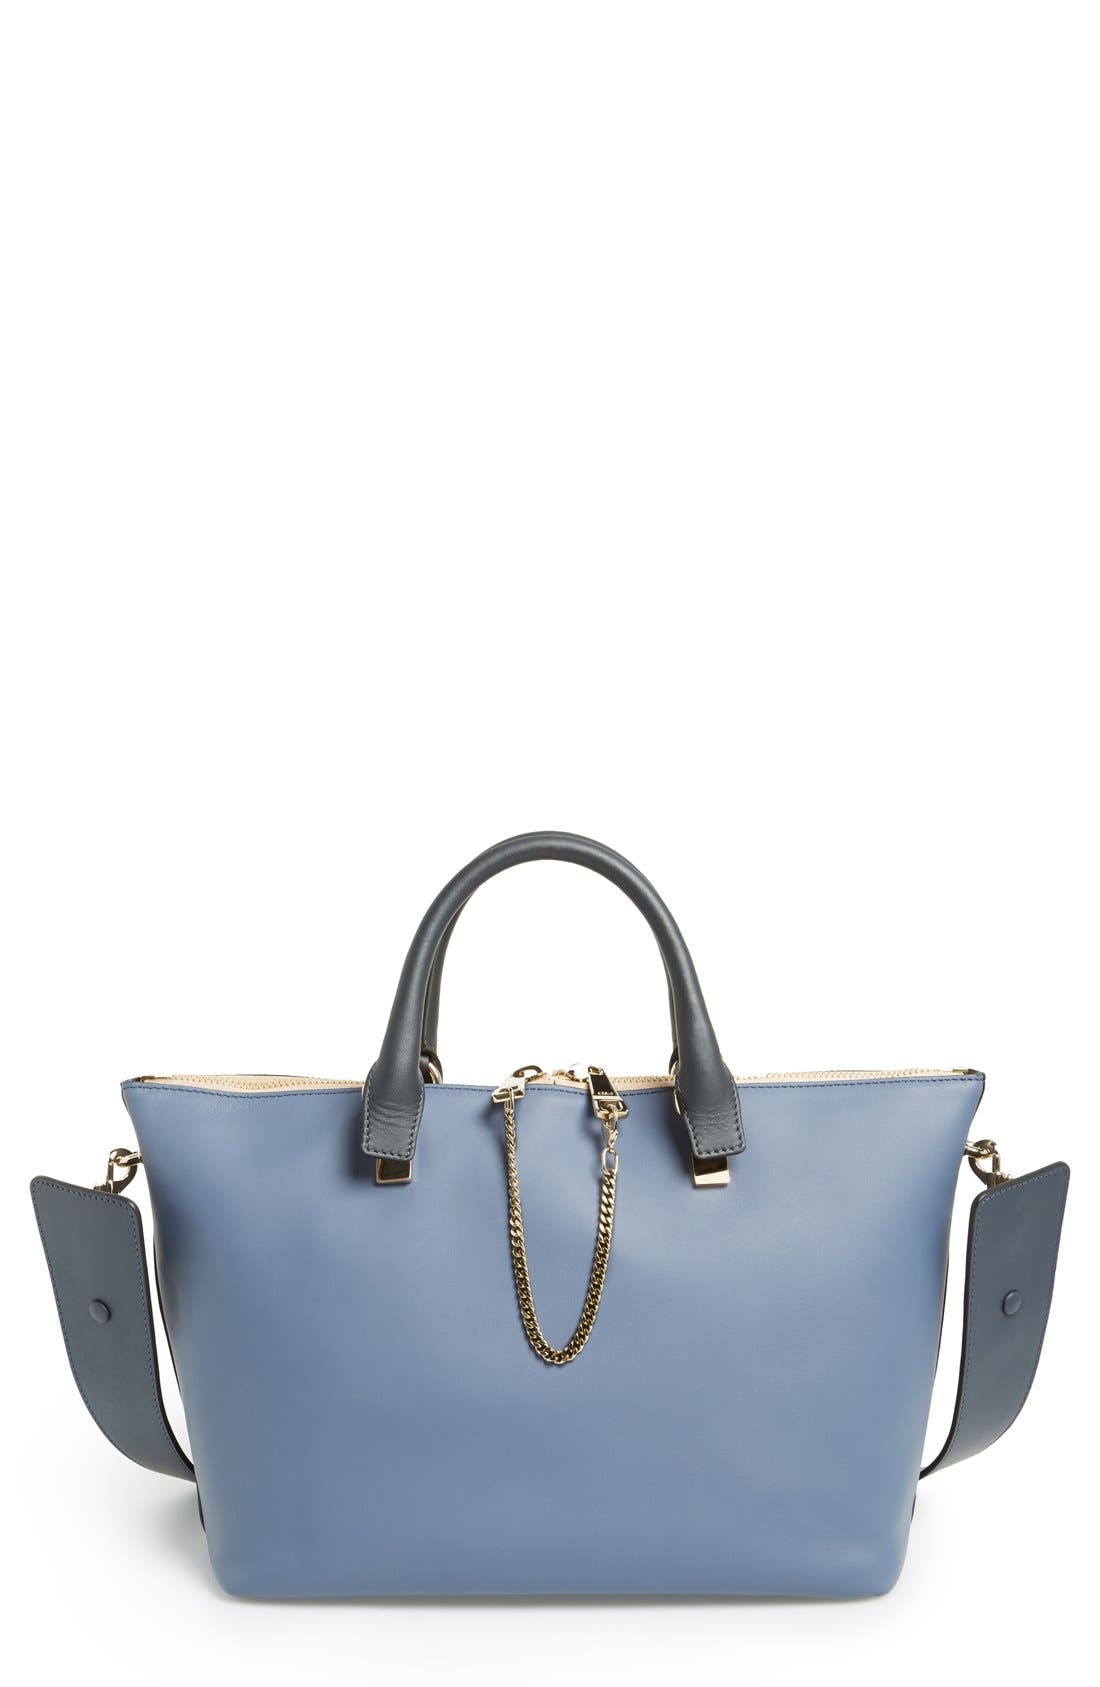 Alternate Image 1 Selected - Chloé 'Baylee - Medium' Shoulder Bag